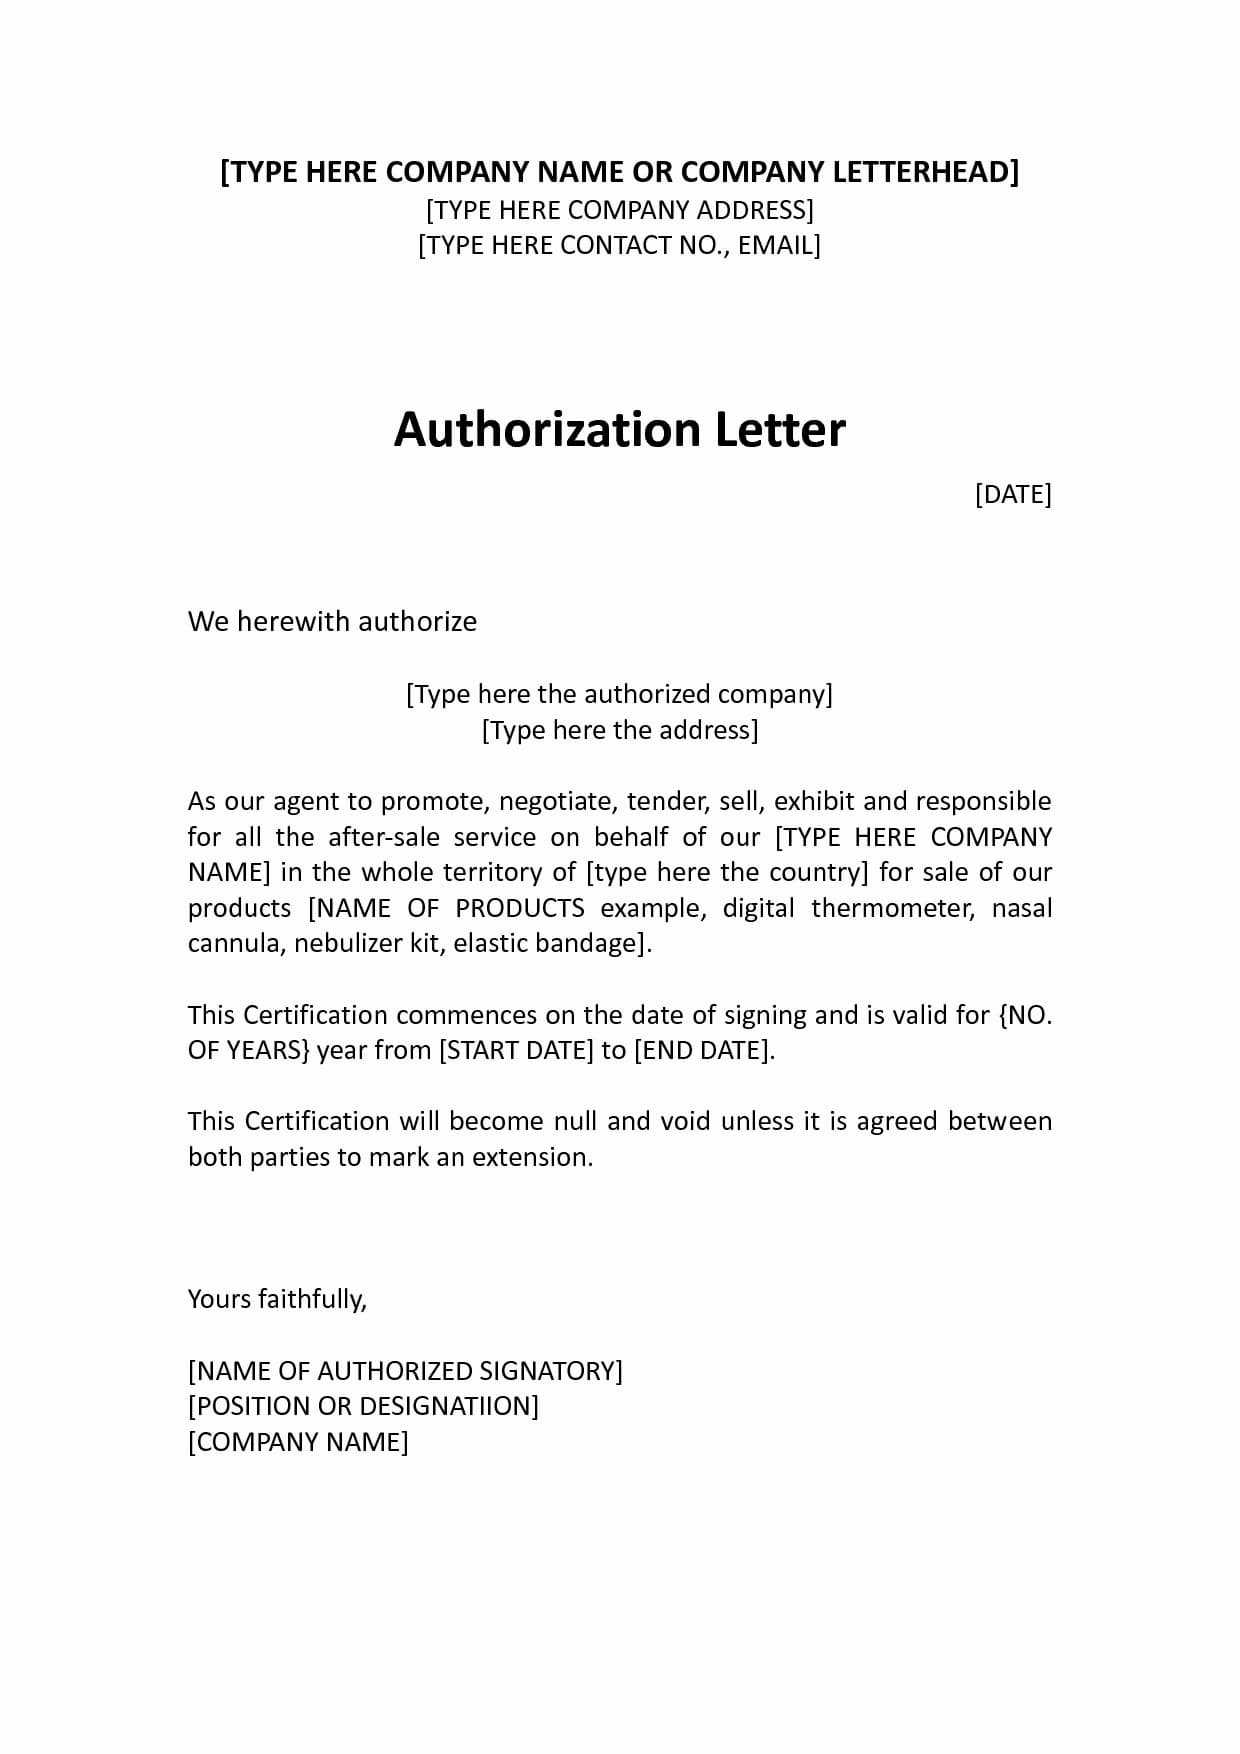 Sample letter of Authorization to act on behalf in Court